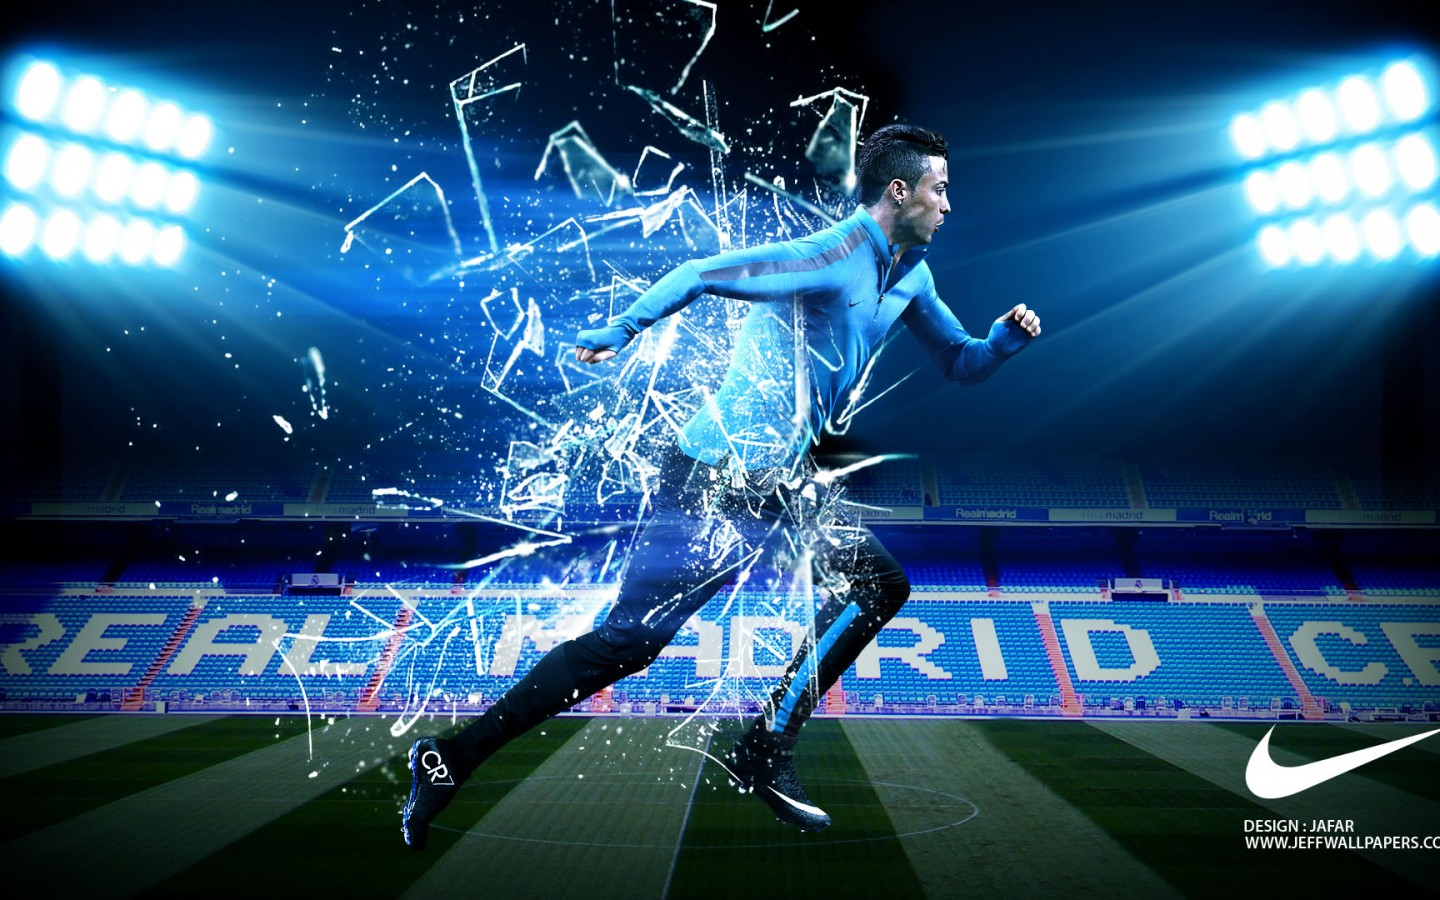 Real Madrid Hd Wallpapers 3d Cristiano Ronaldo Nike Wallpaper By Jafarjeef Cristiano